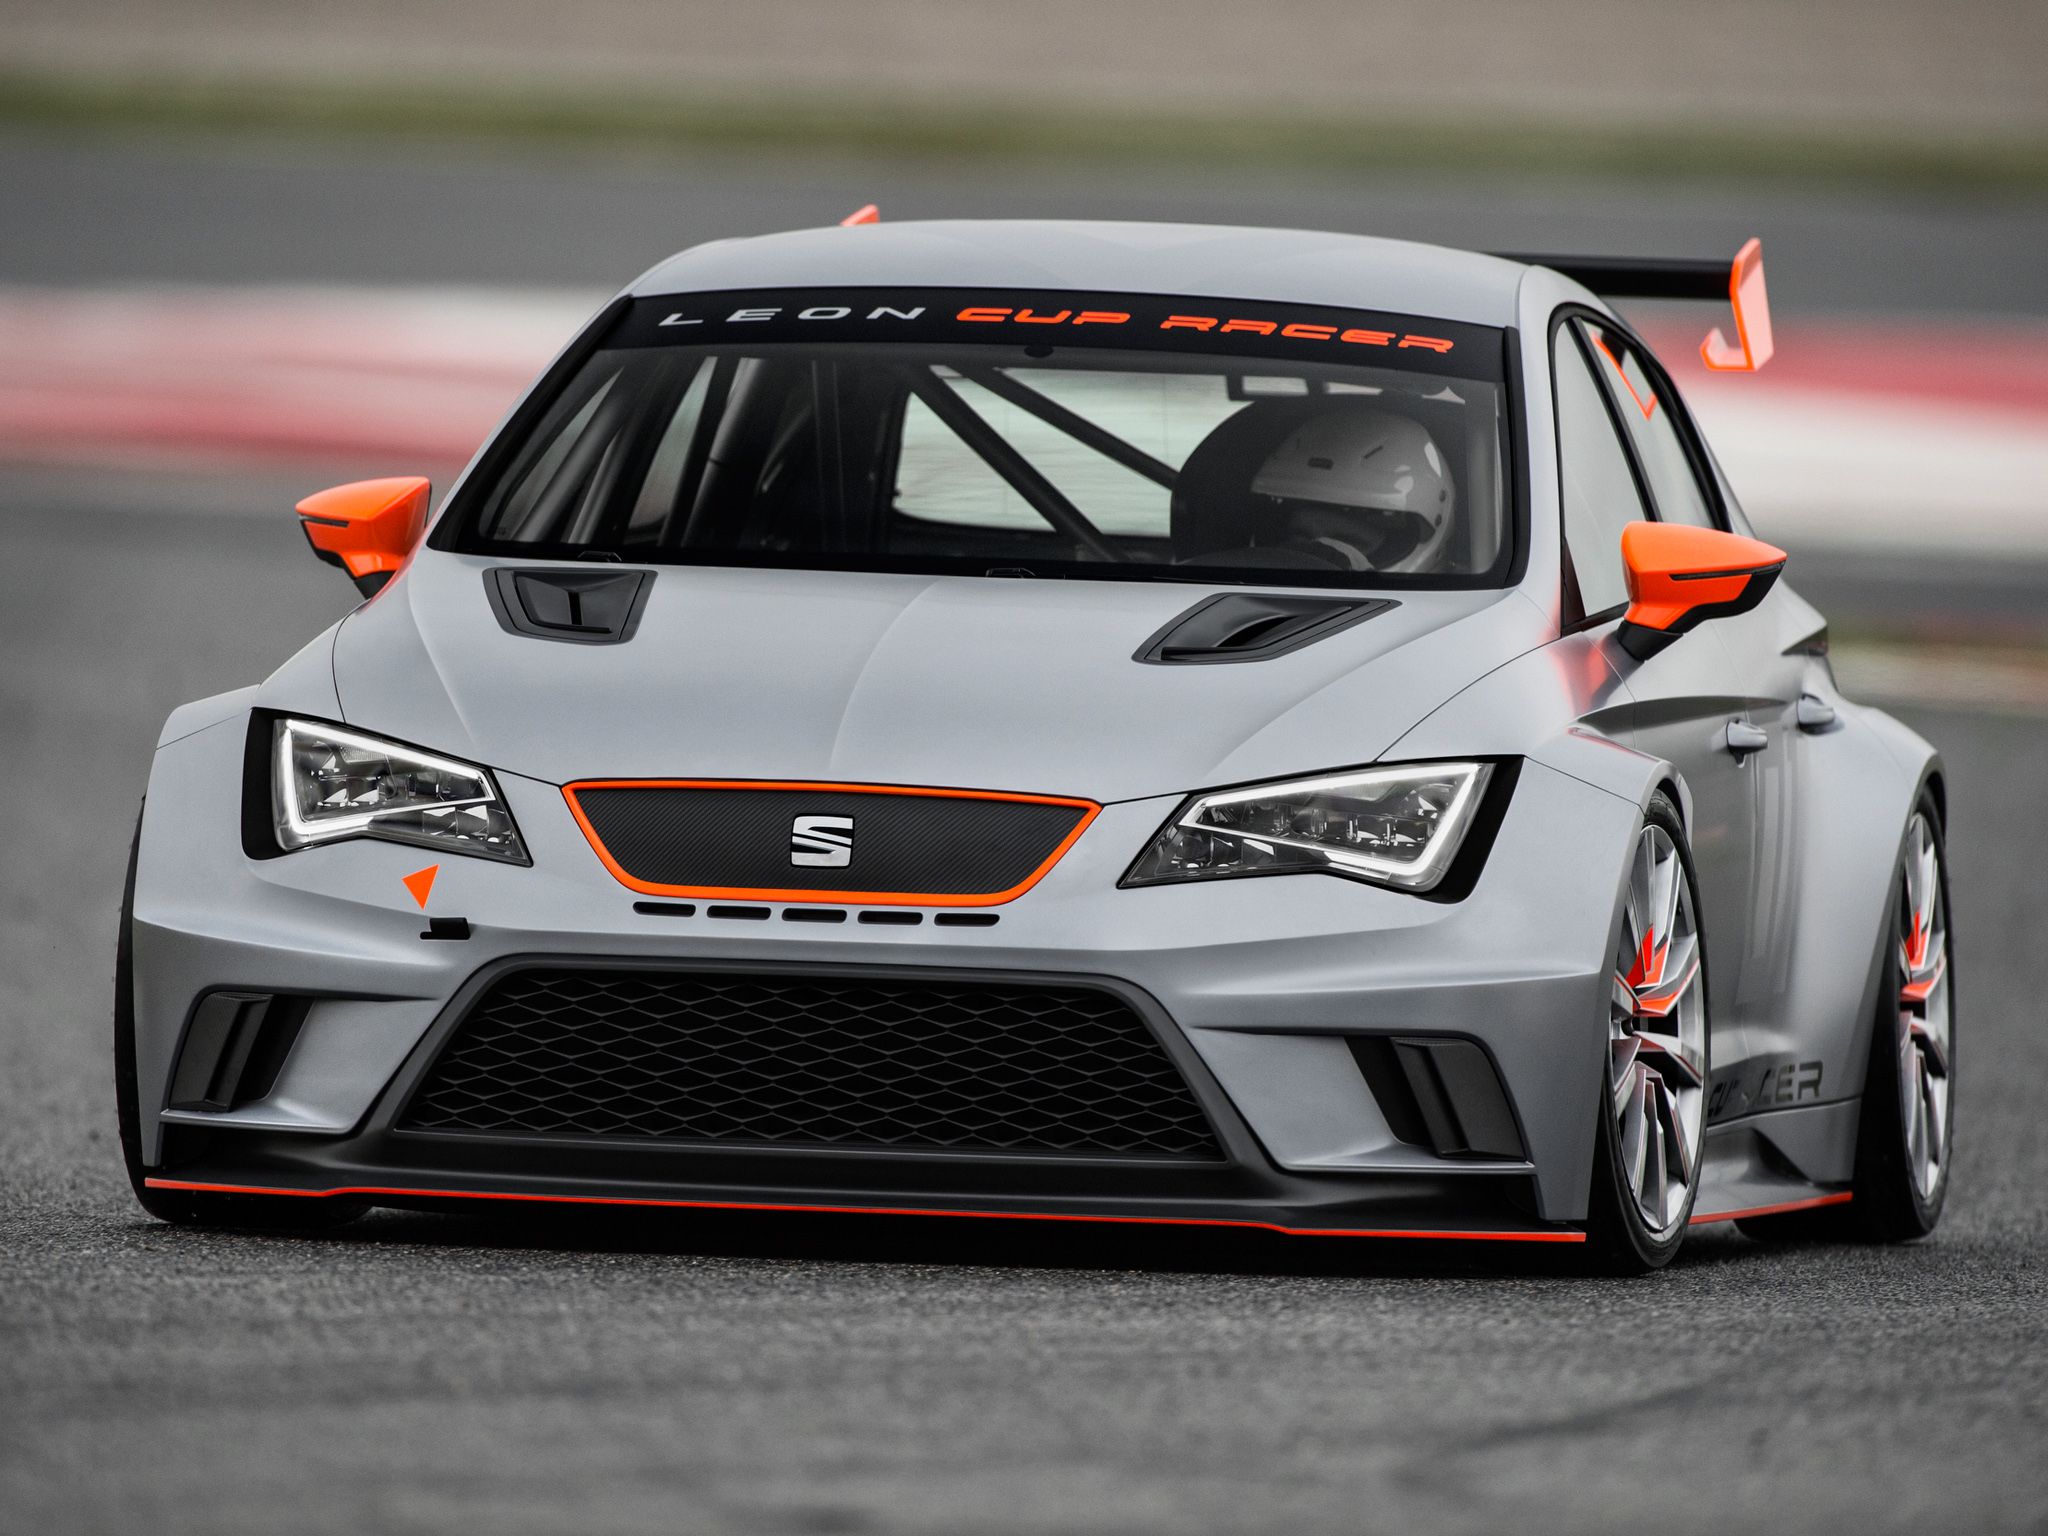 2013 seat leon cup racer tuning race racing f wallpaper. Black Bedroom Furniture Sets. Home Design Ideas